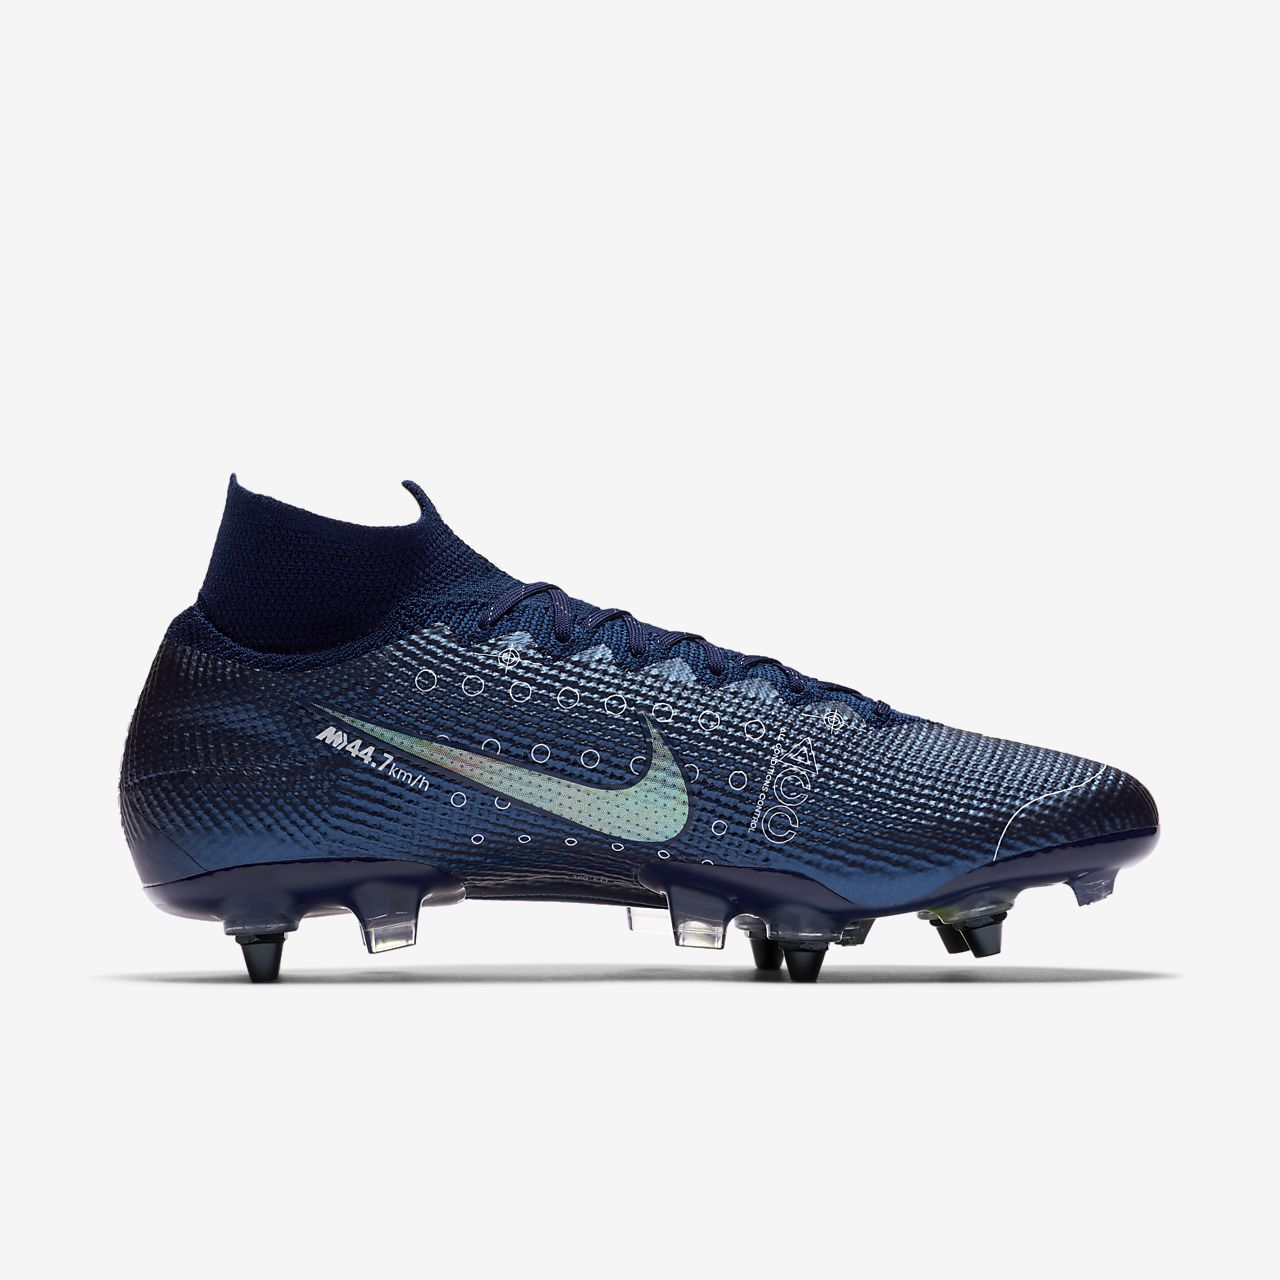 Chaussure de football à crampons pour terrain gras Nike Mercurial Superfly 7 Elite MDS SG PRO Anti Clog Traction